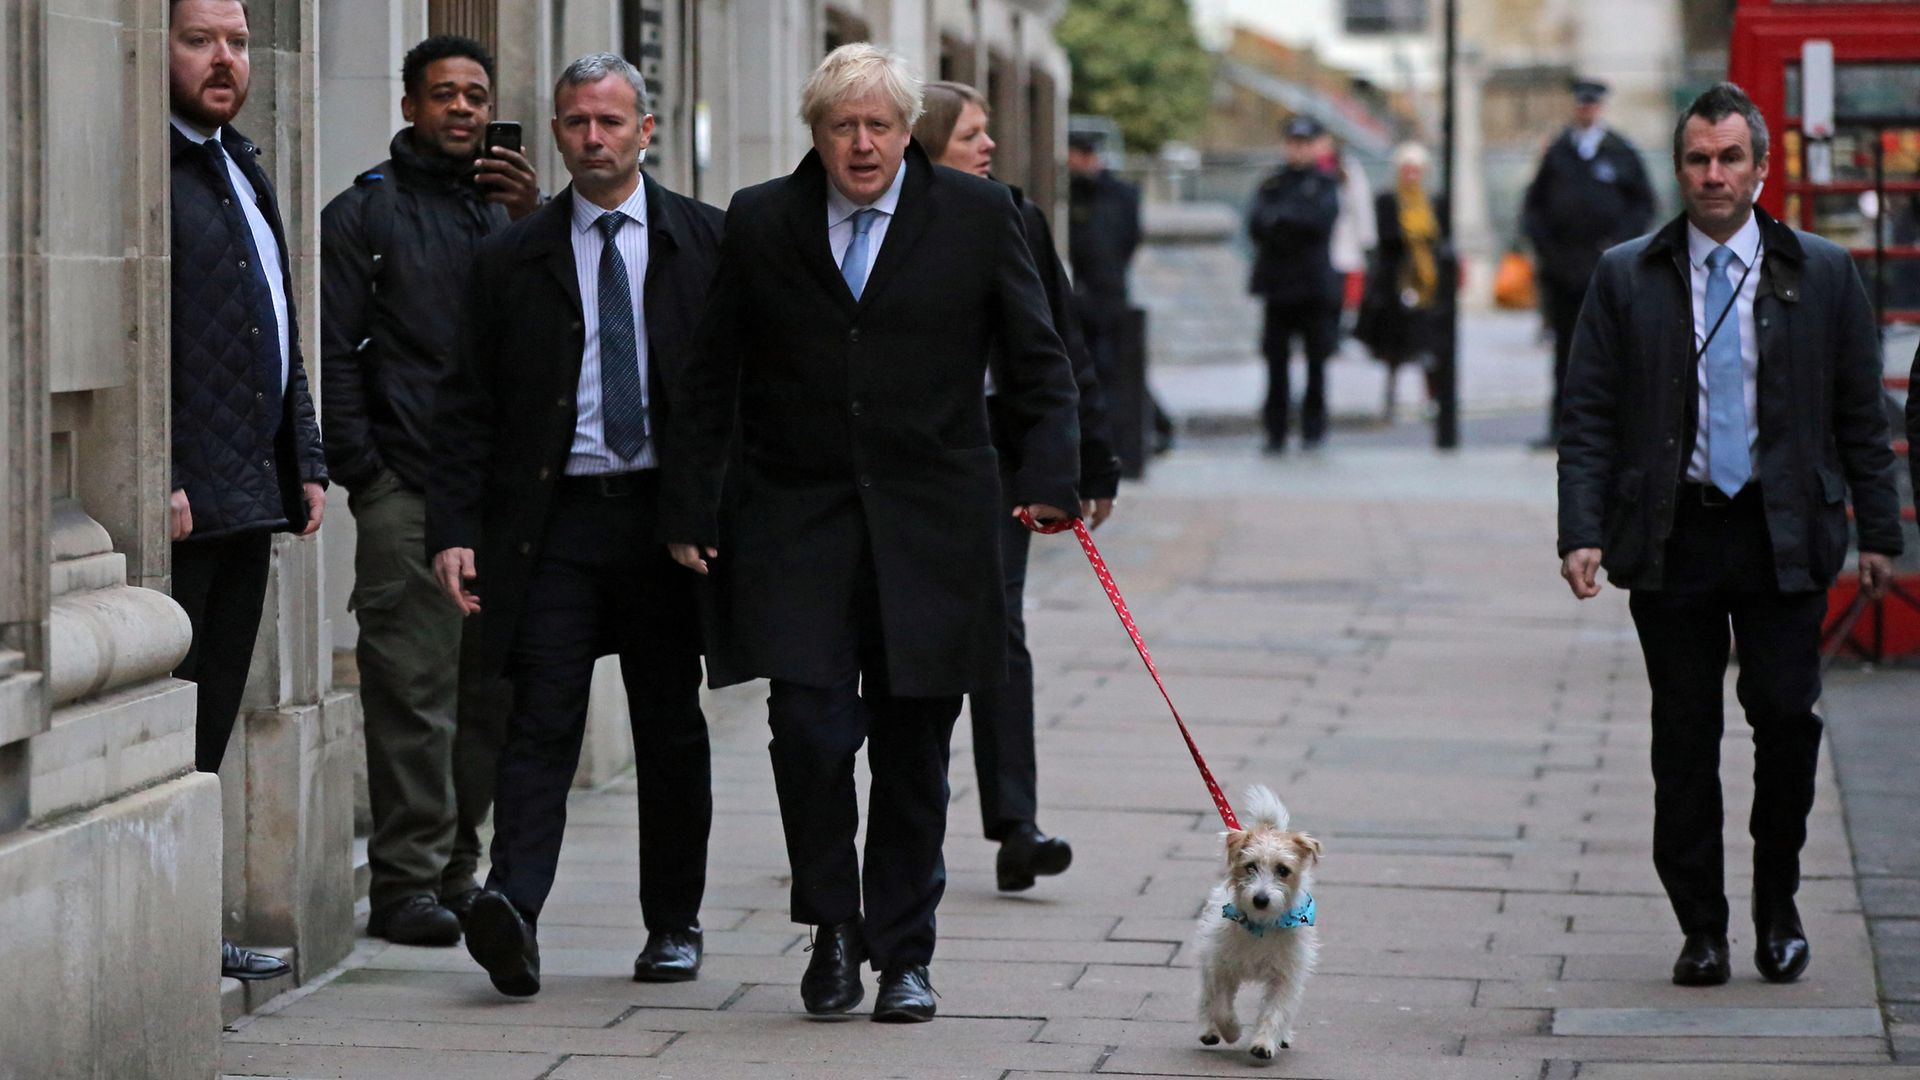 Prime Minister Boris Johnson arrives with his dog Dilyn to cast his vote in the 2019 General Election at Methodist Central Hall, London - Credit: PA